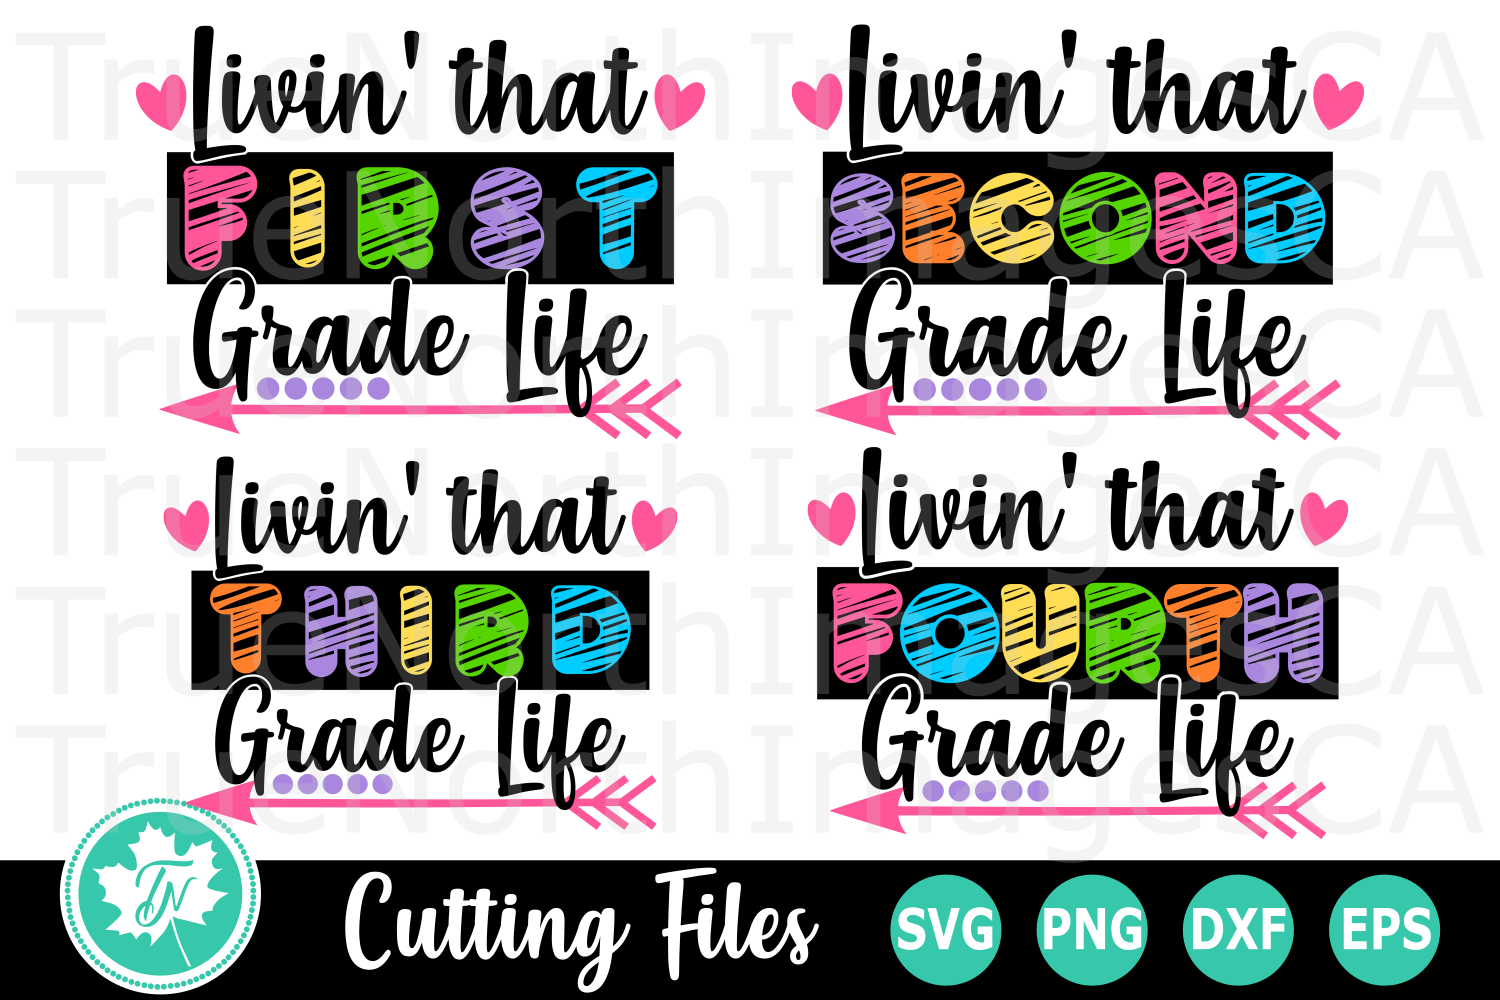 Livin' that School Life - A School SVG Bundle example image 1